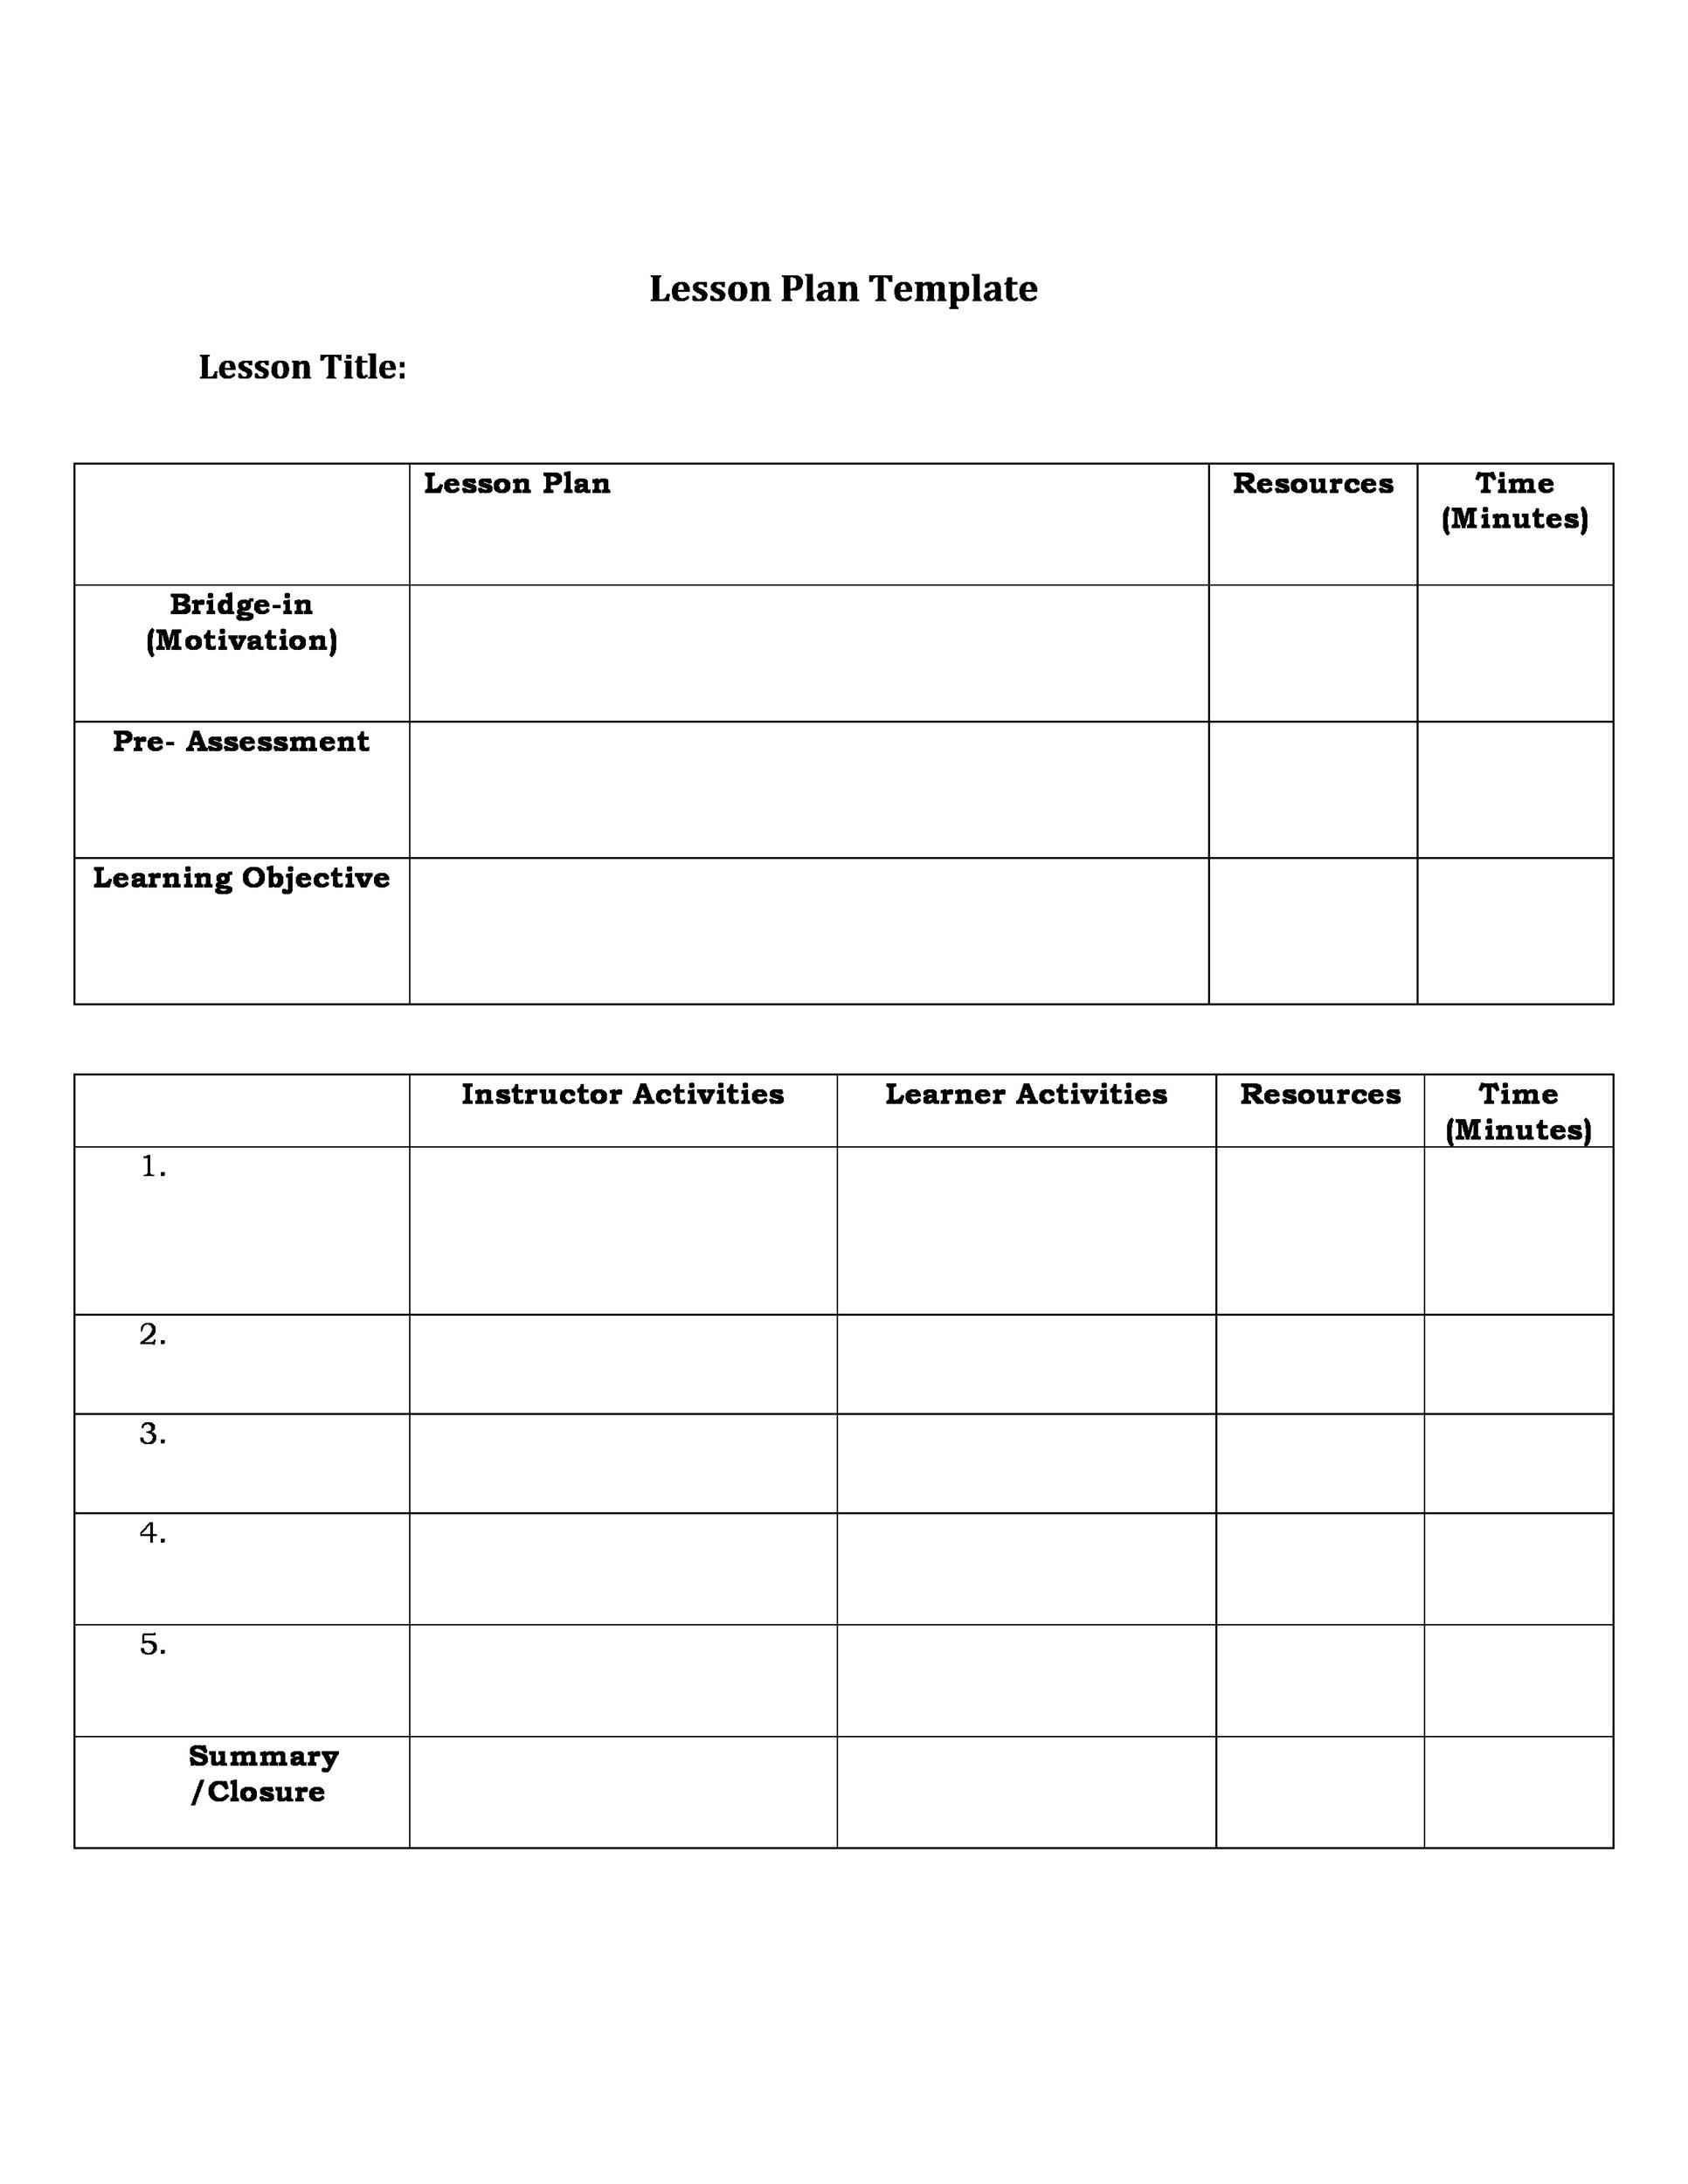 FREE Lesson Plan Templates Common Core Preschool Weekly - Free printable lesson plan template